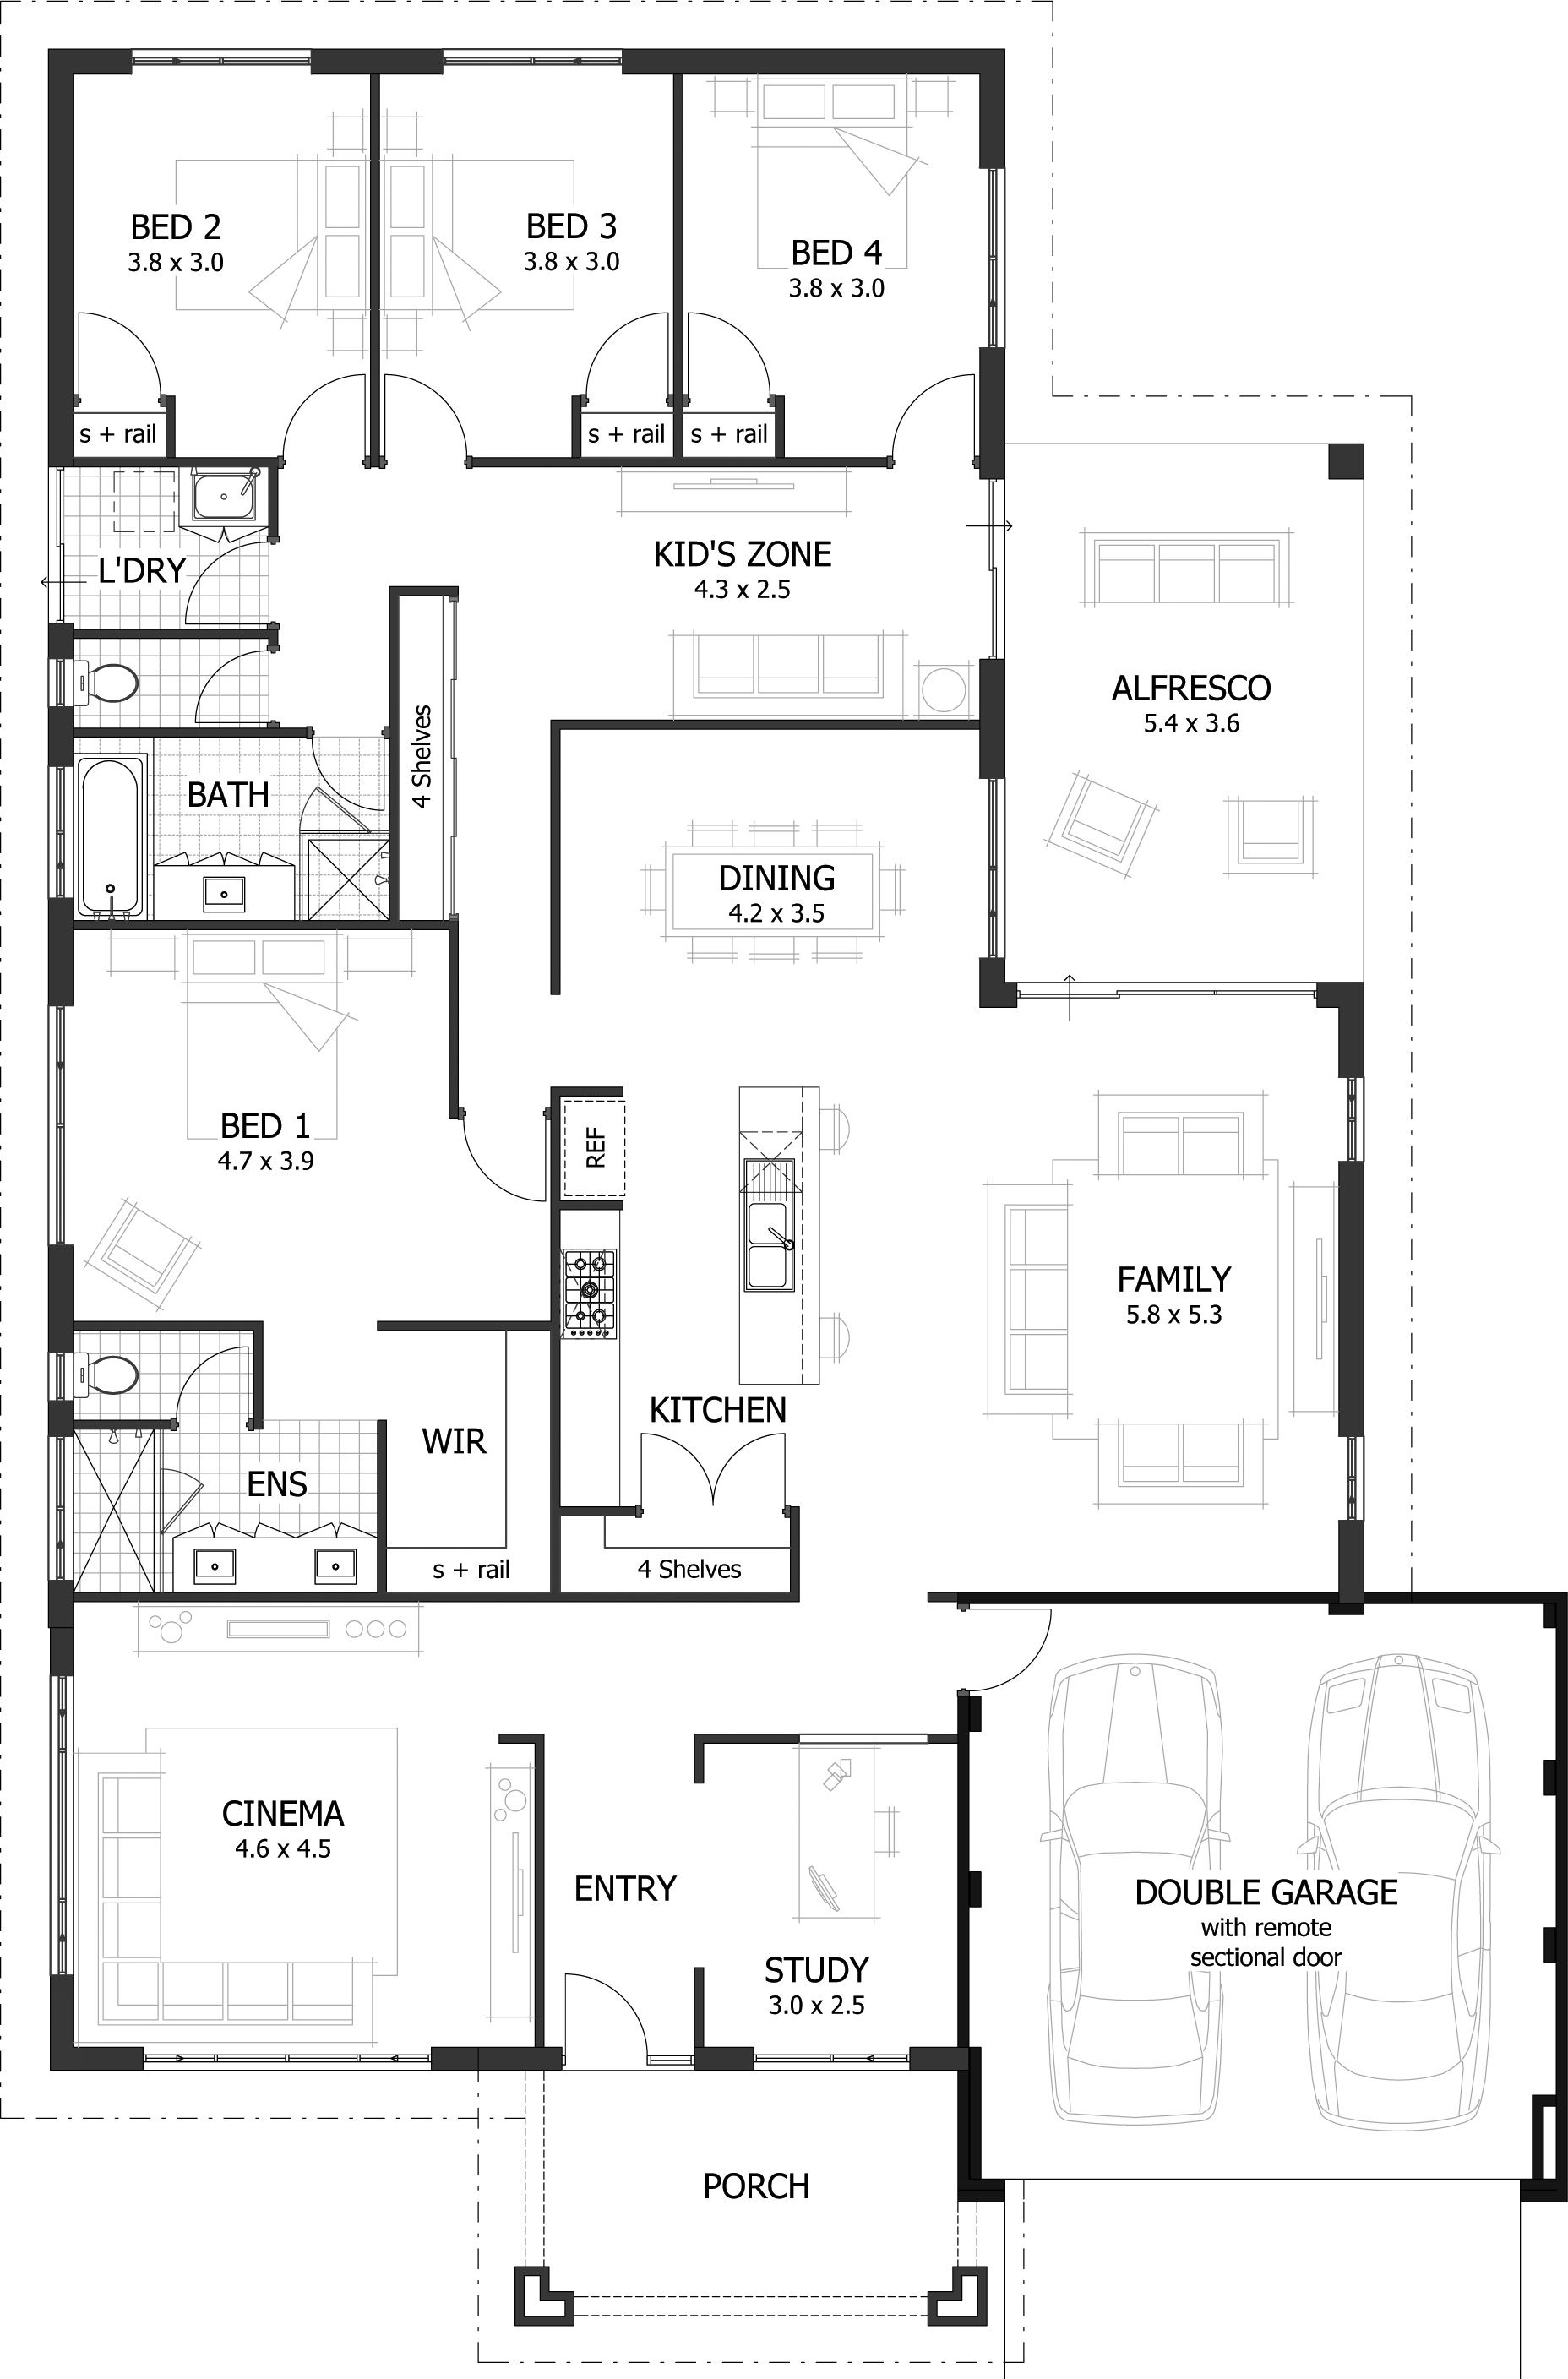 4 Bedroom House Plans & Home Designs | Celebration Homes | x - house ...